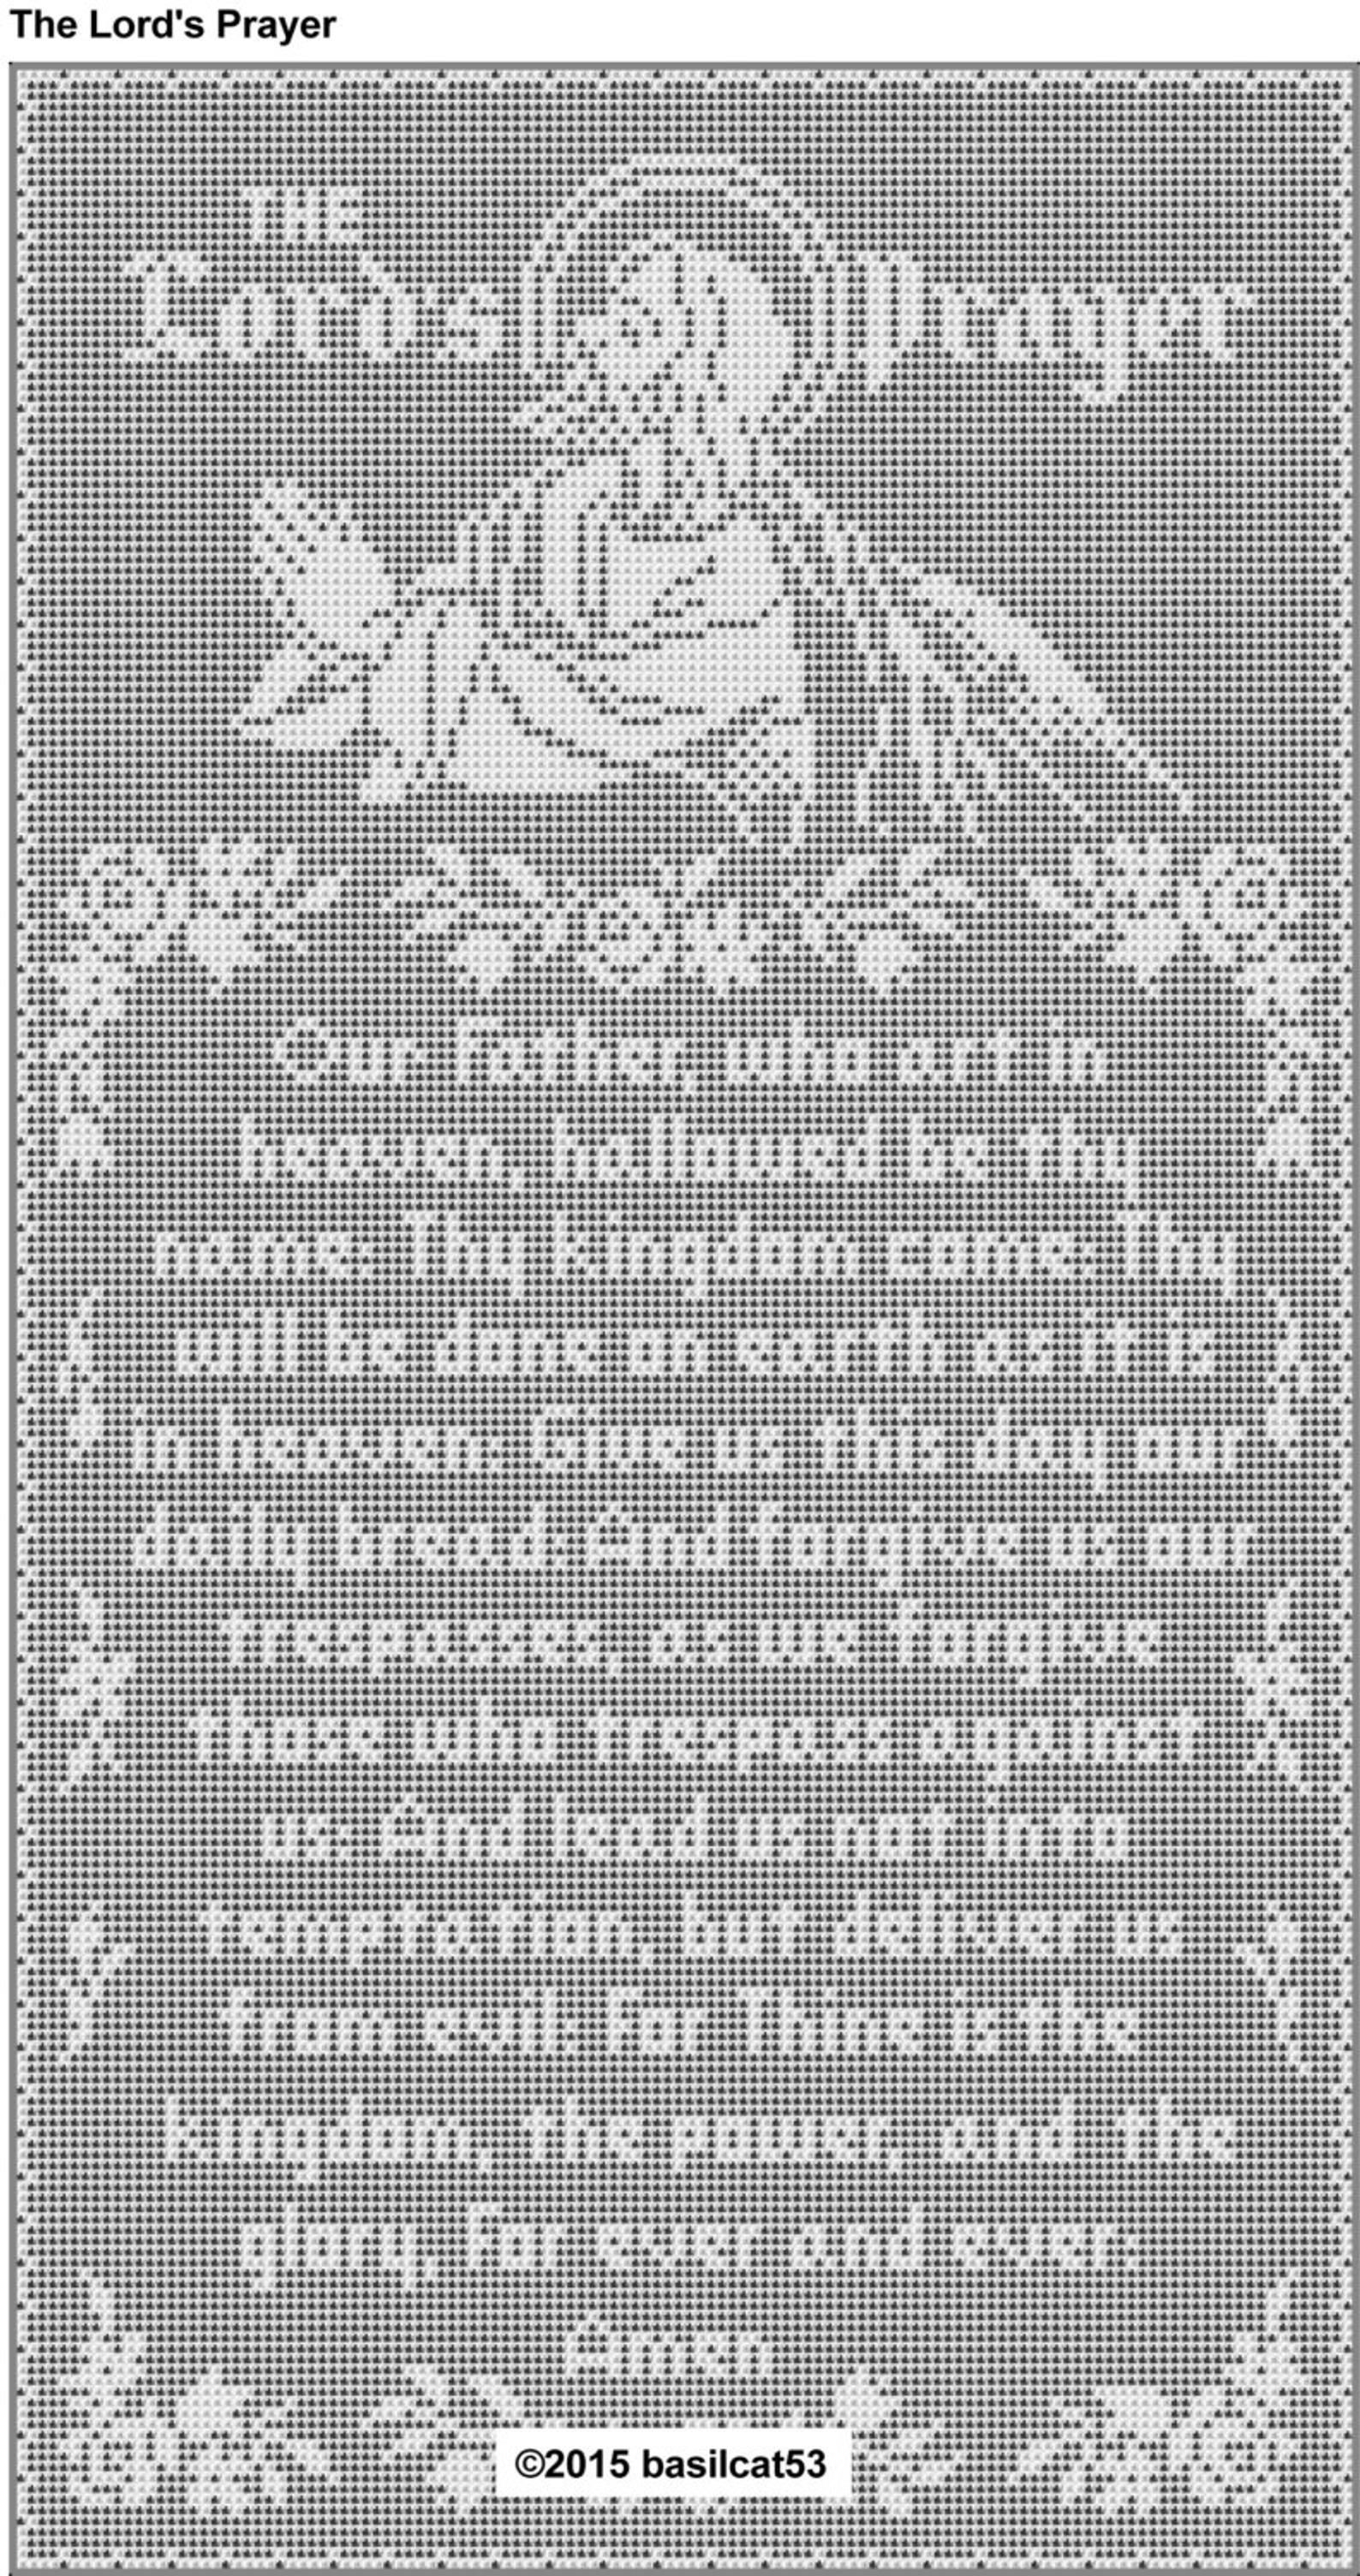 The Lord's Prayer Thread Filet Crochet Wall Hanging